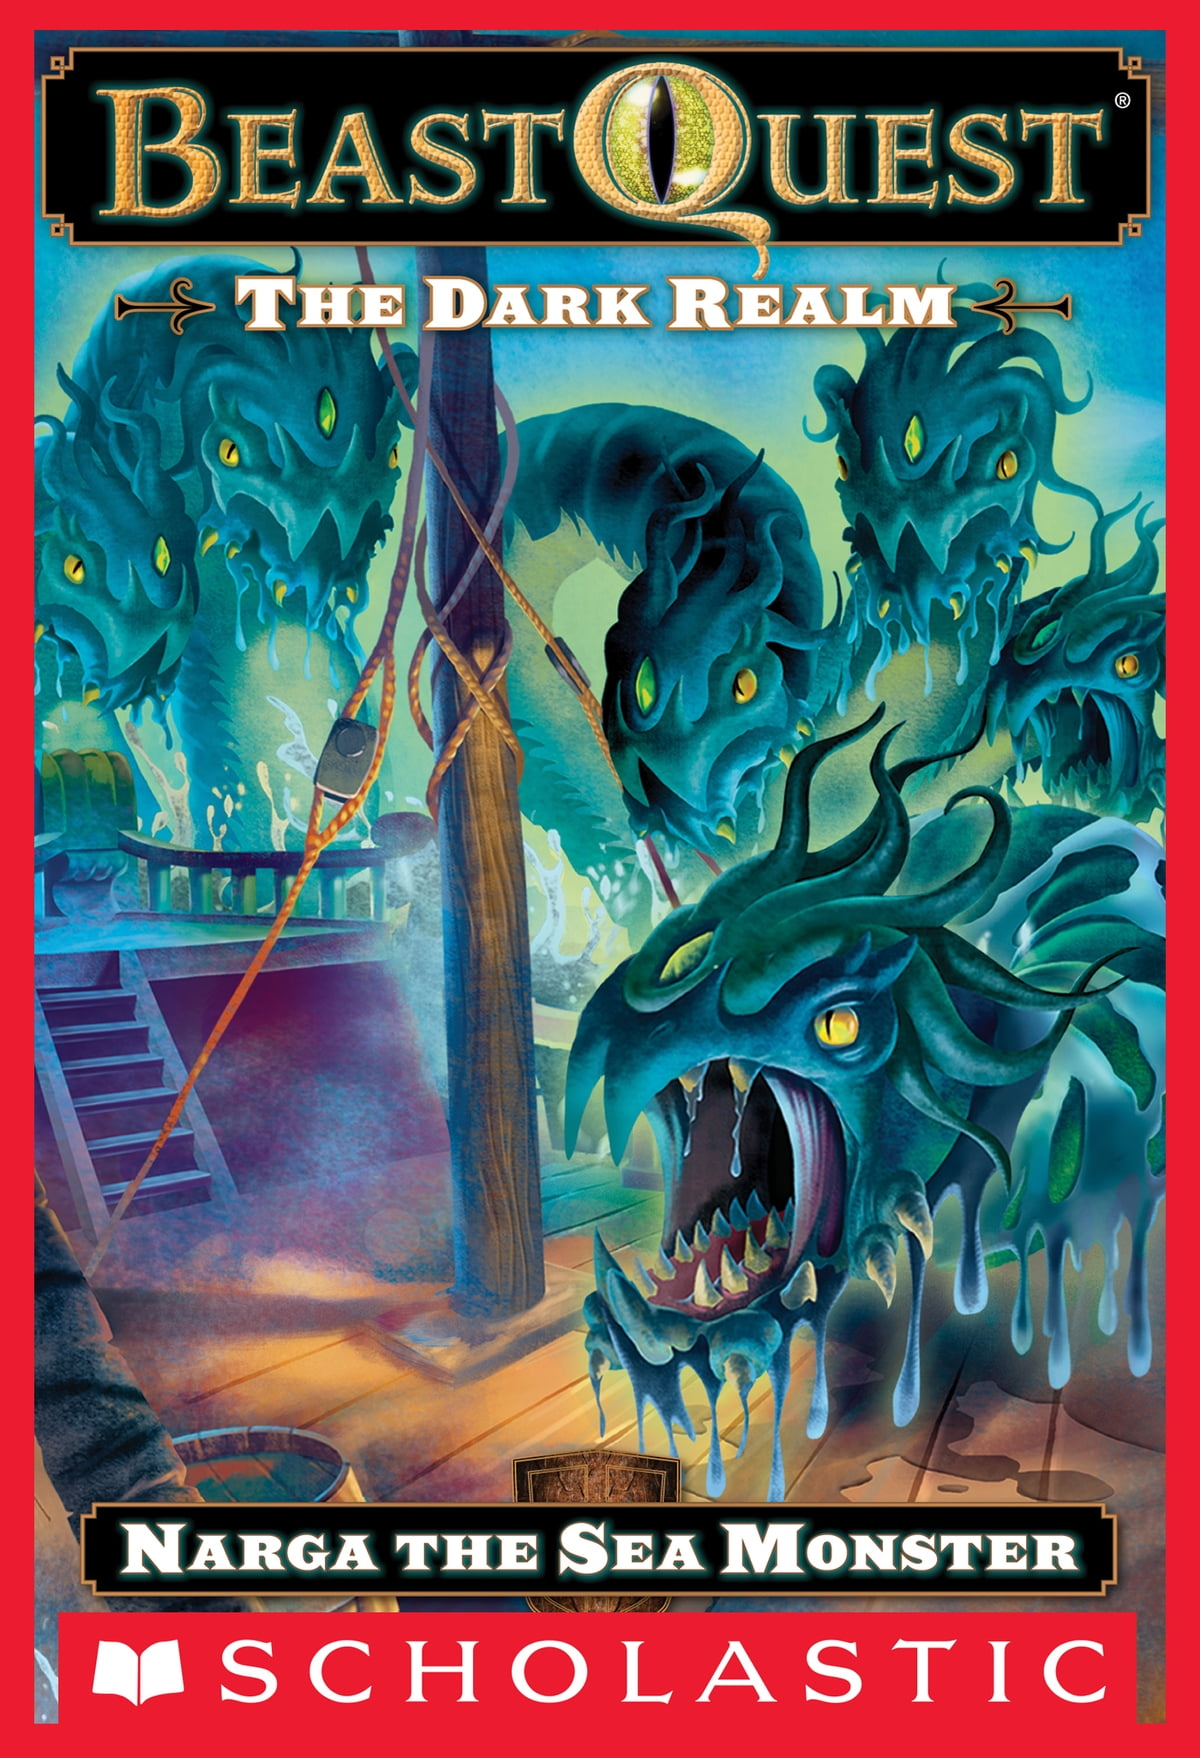 Beast quest 14 the dark realm skor the winged stallion ebook by beast quest 15 the dark realm narga the sea monster narga the fandeluxe Epub